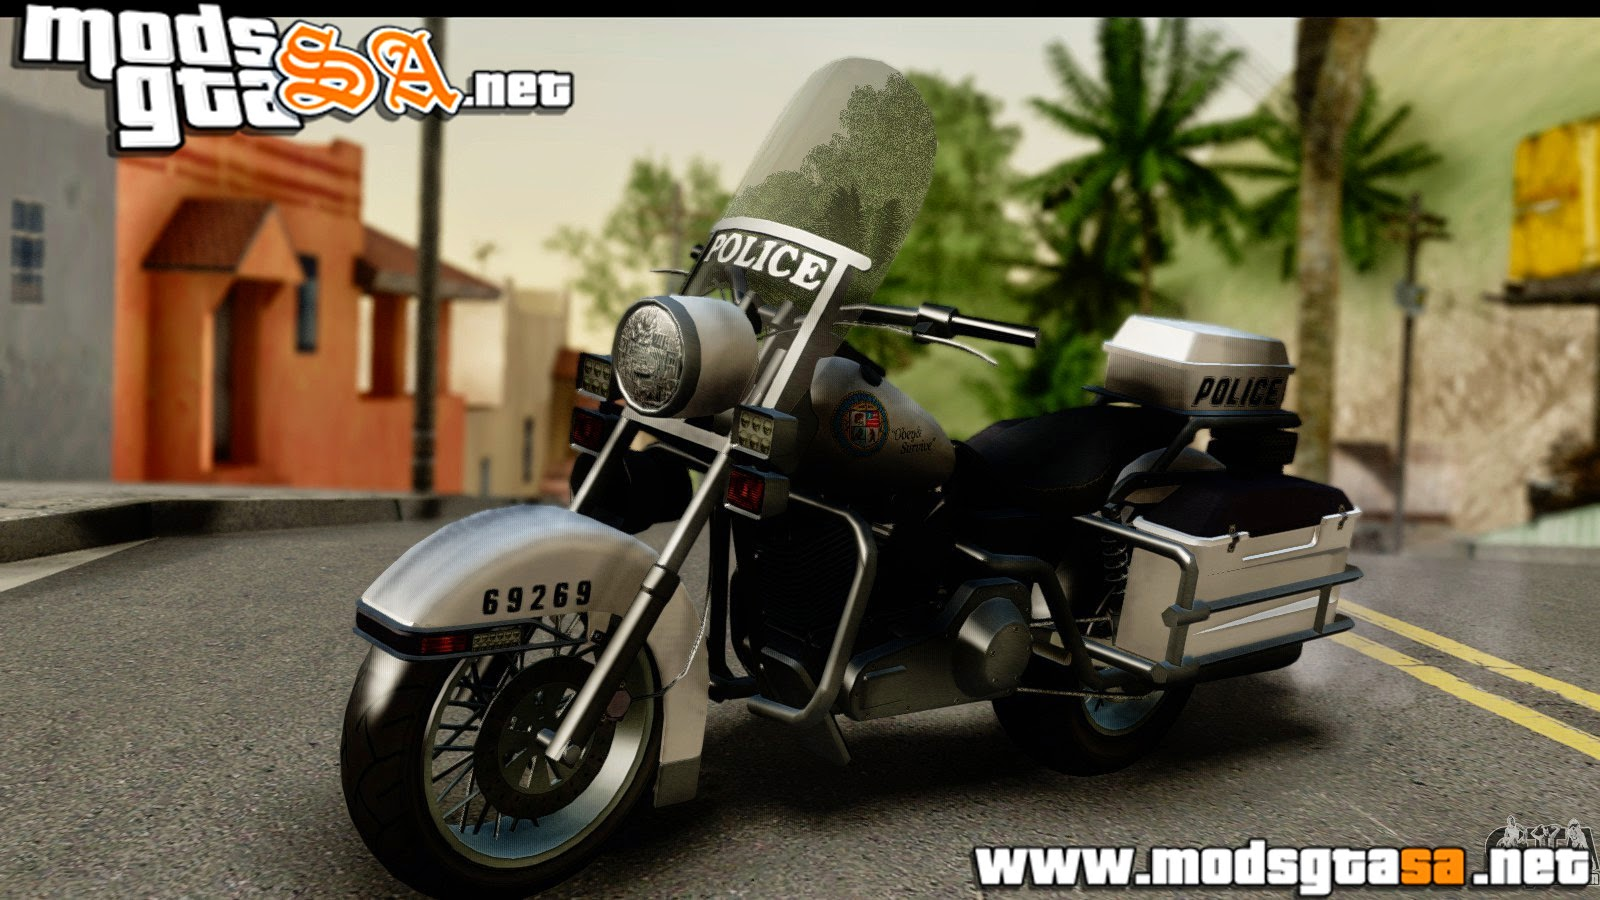 SA - Moto da Policia do GTA V